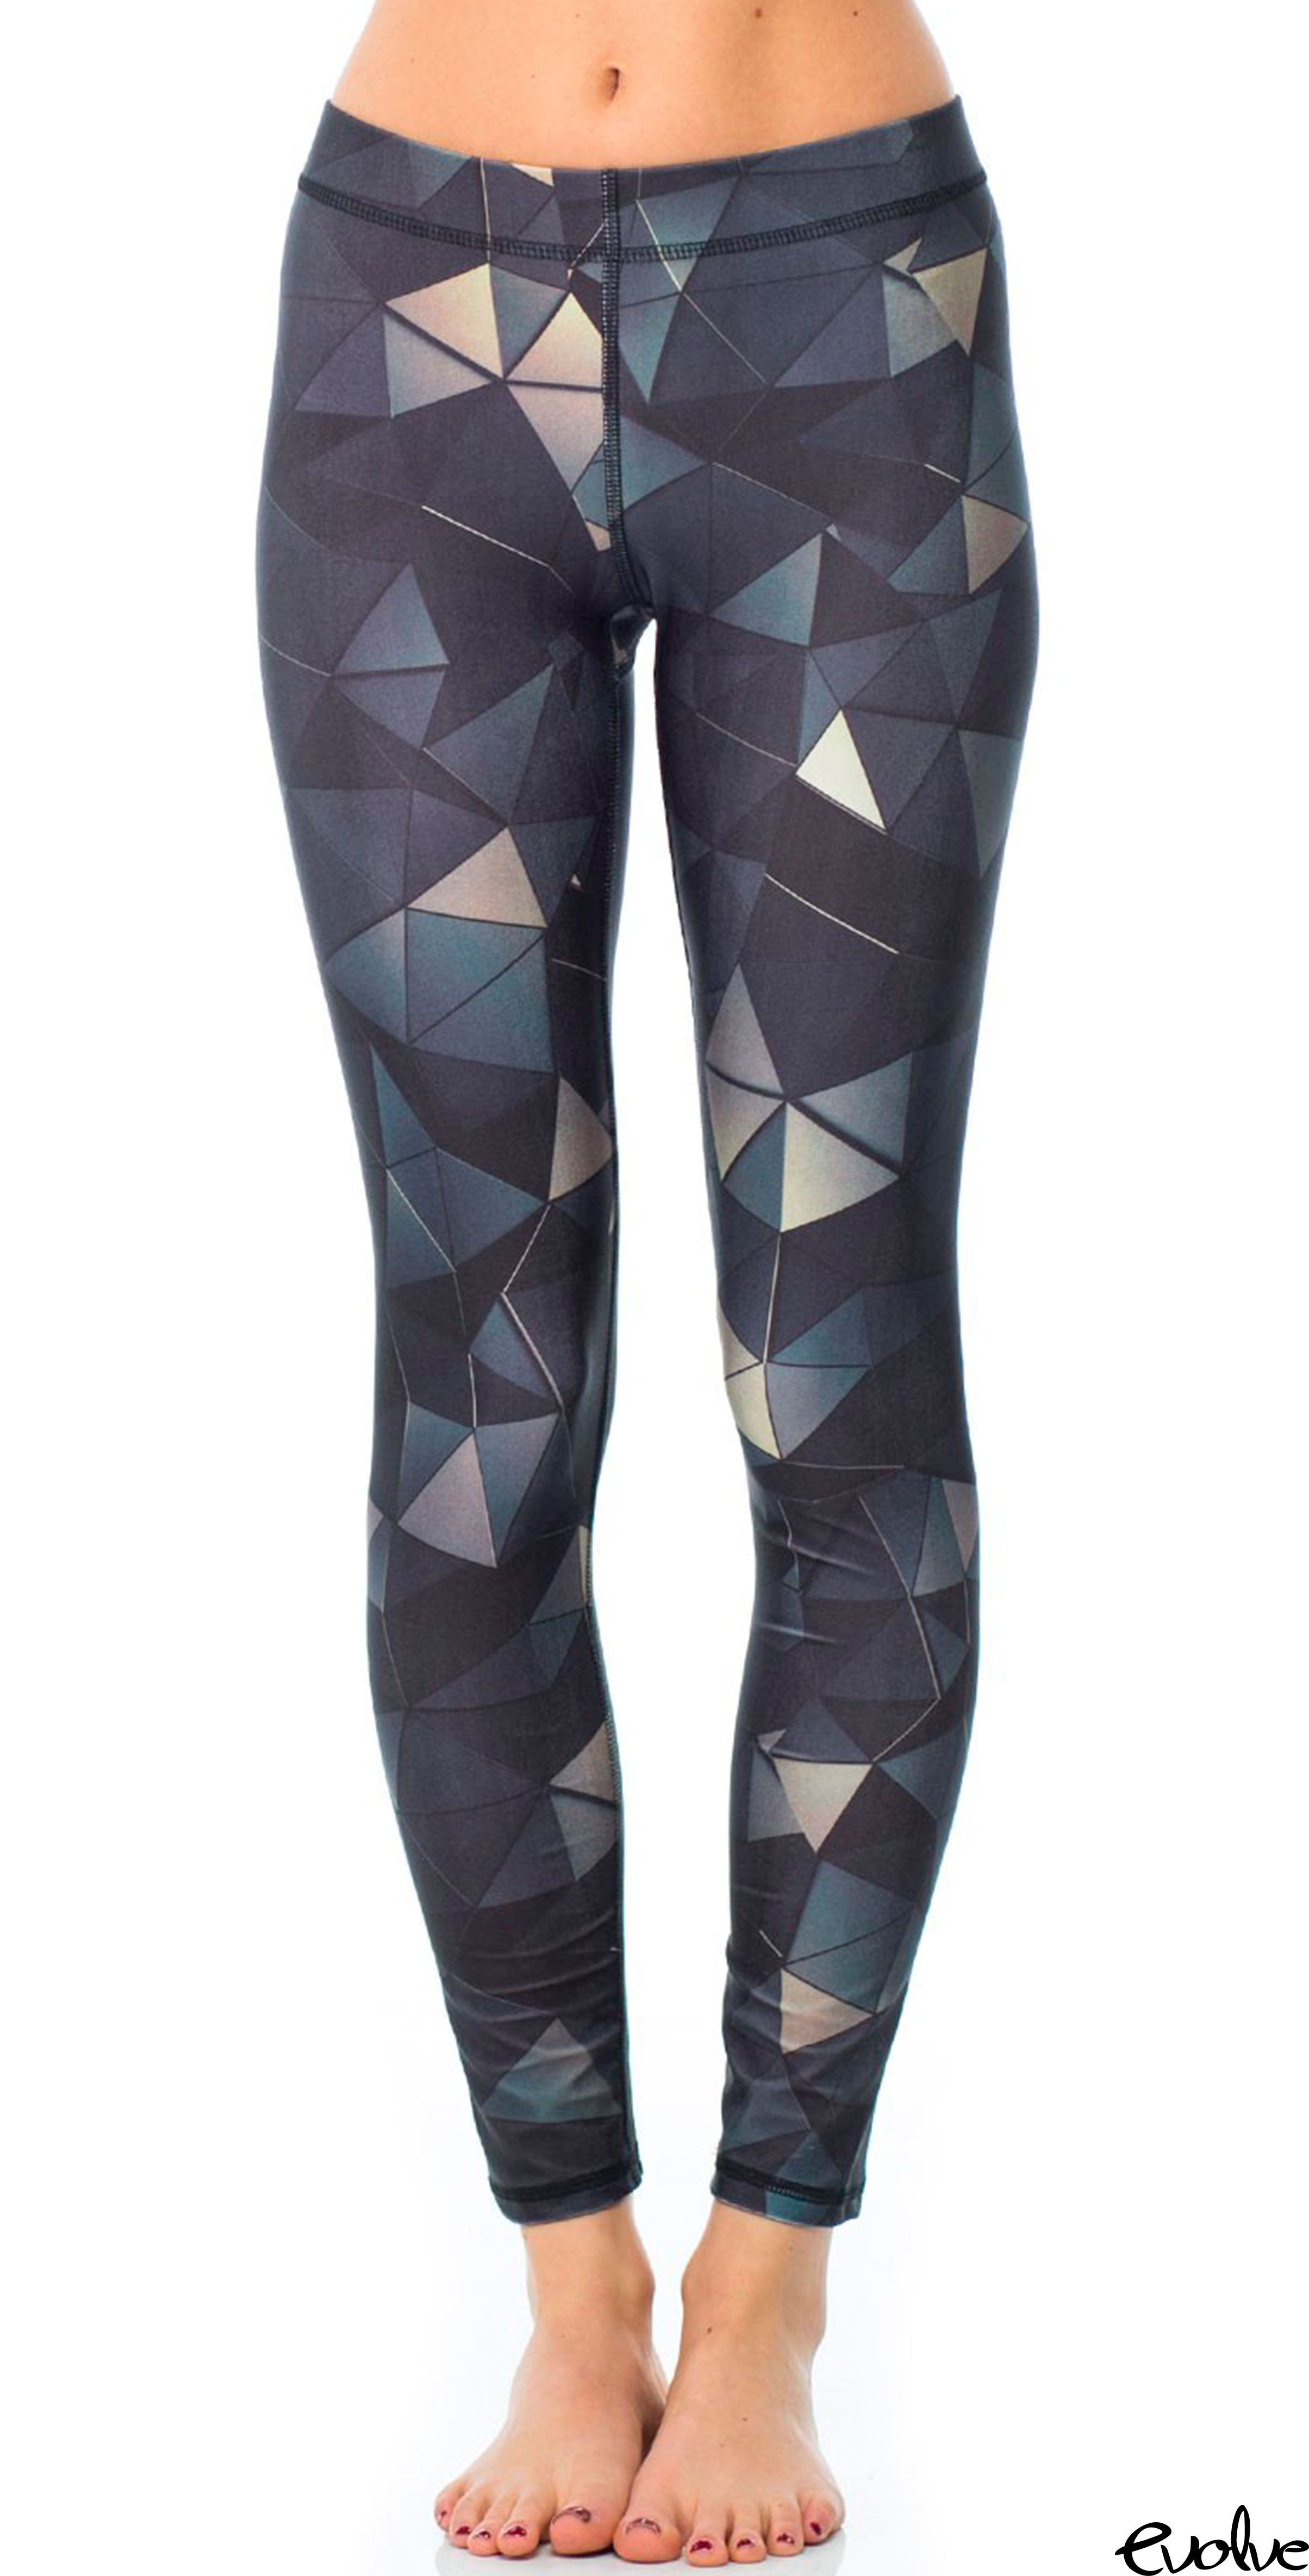 2485c9ce89ad9 Add a whole new level of edgy style to your workout ensemble with these  geometric print leggings from Terez! Shop now at www.evolvefitwear.com.